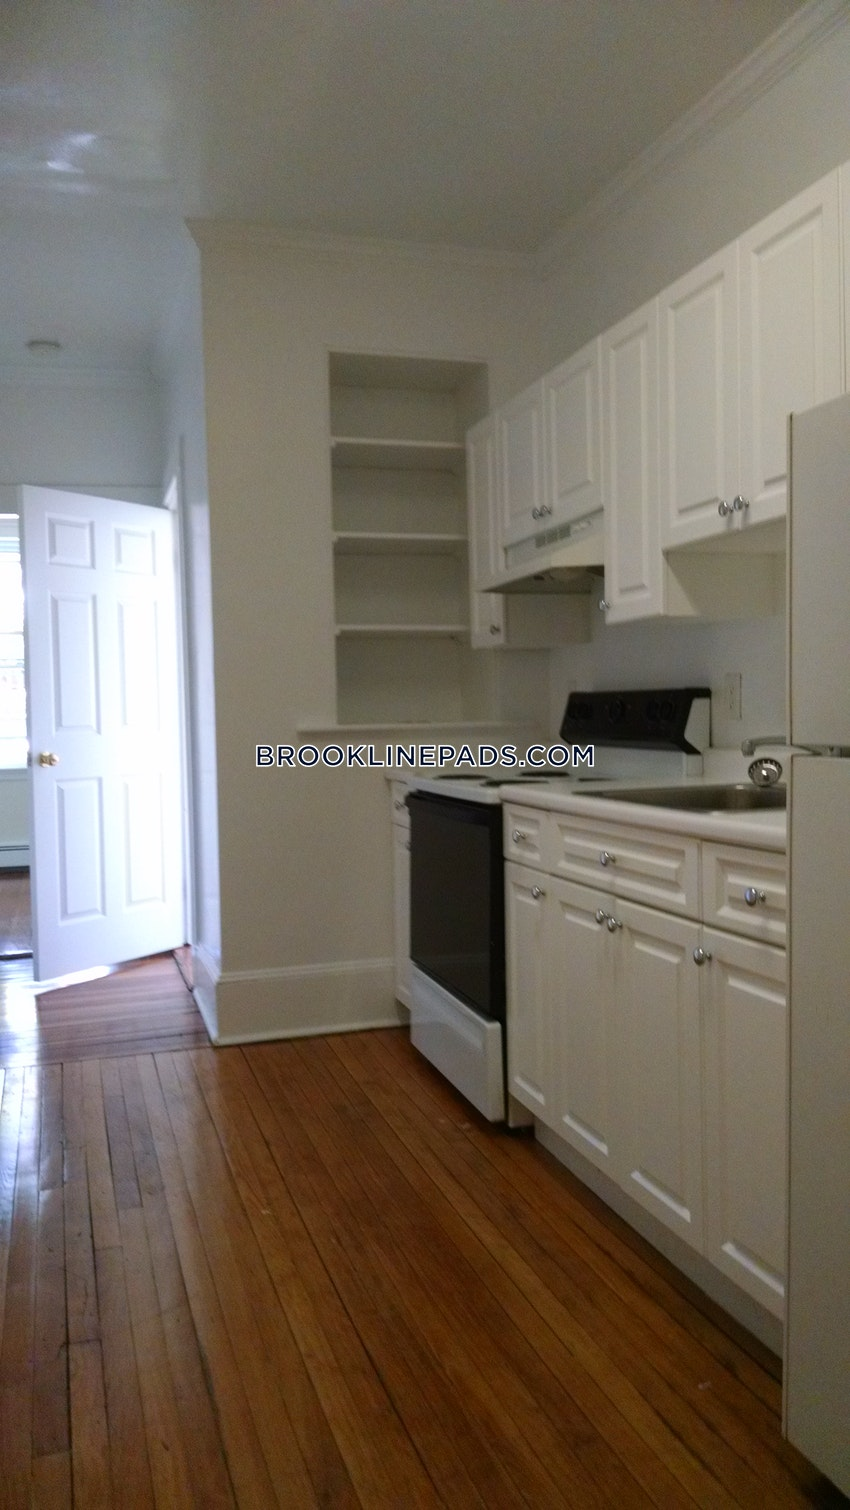 BROOKLINE- WASHINGTON SQUARE - 2 Beds, 1 Bath - Image 4